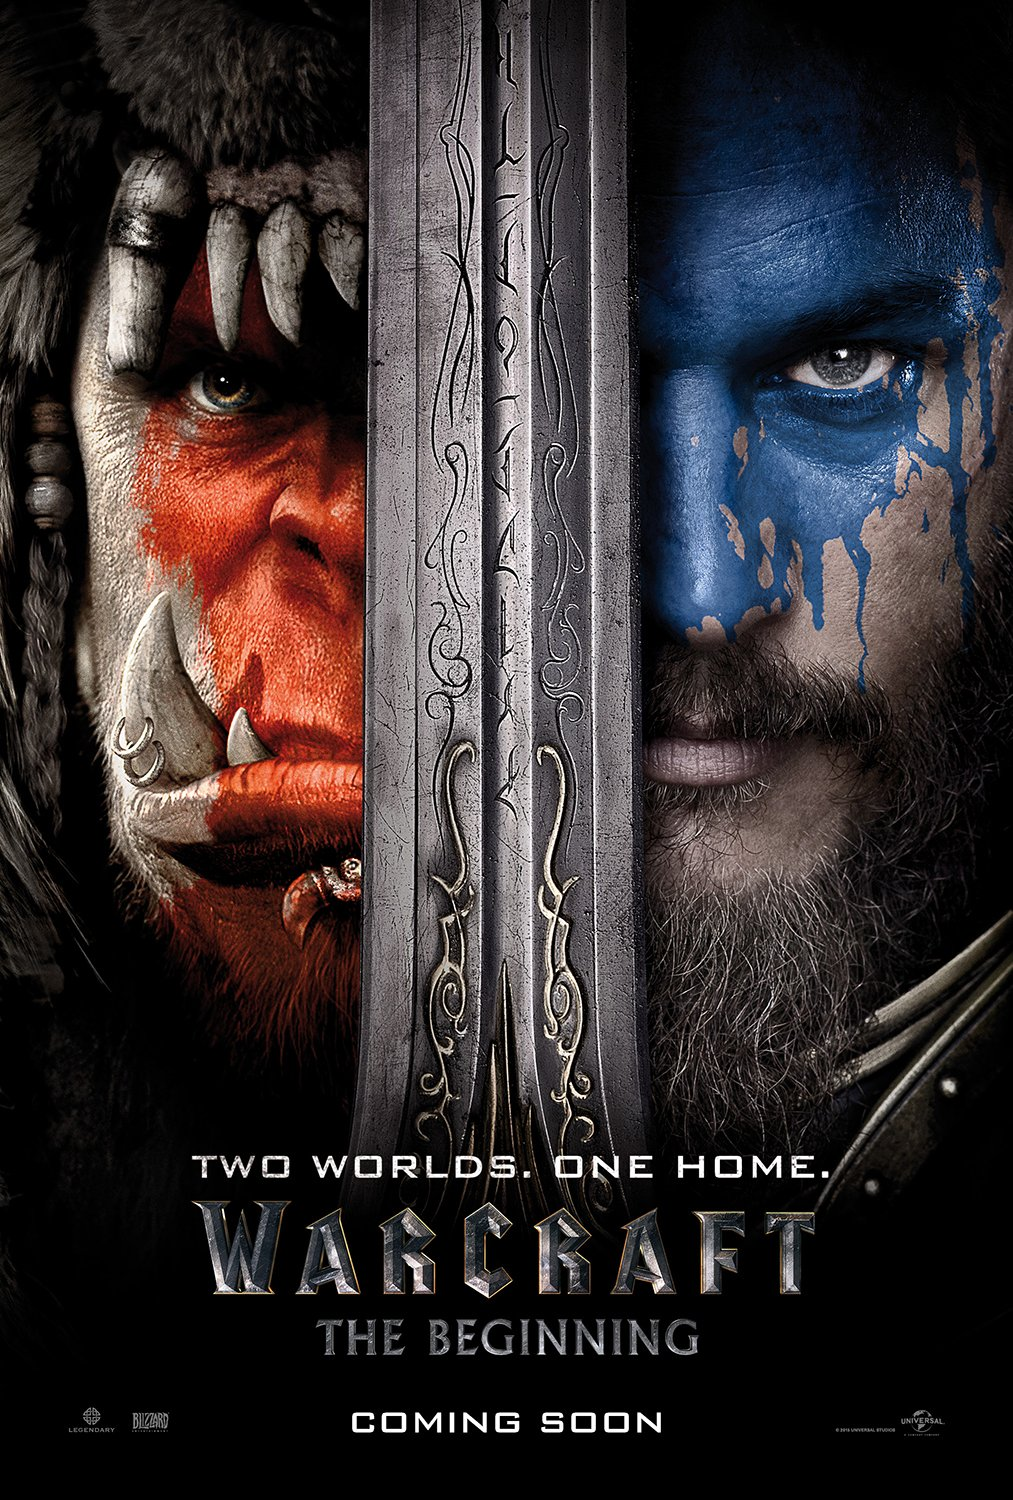 Warcraft Review - OC Movie Reviews - Movie Reviews, Movie News, Documentary Reviews, Short Films, Short Film Reviews, Trailers, Movie Trailers, Interviews, film reviews, film news, hollywood, indie films, documentaries